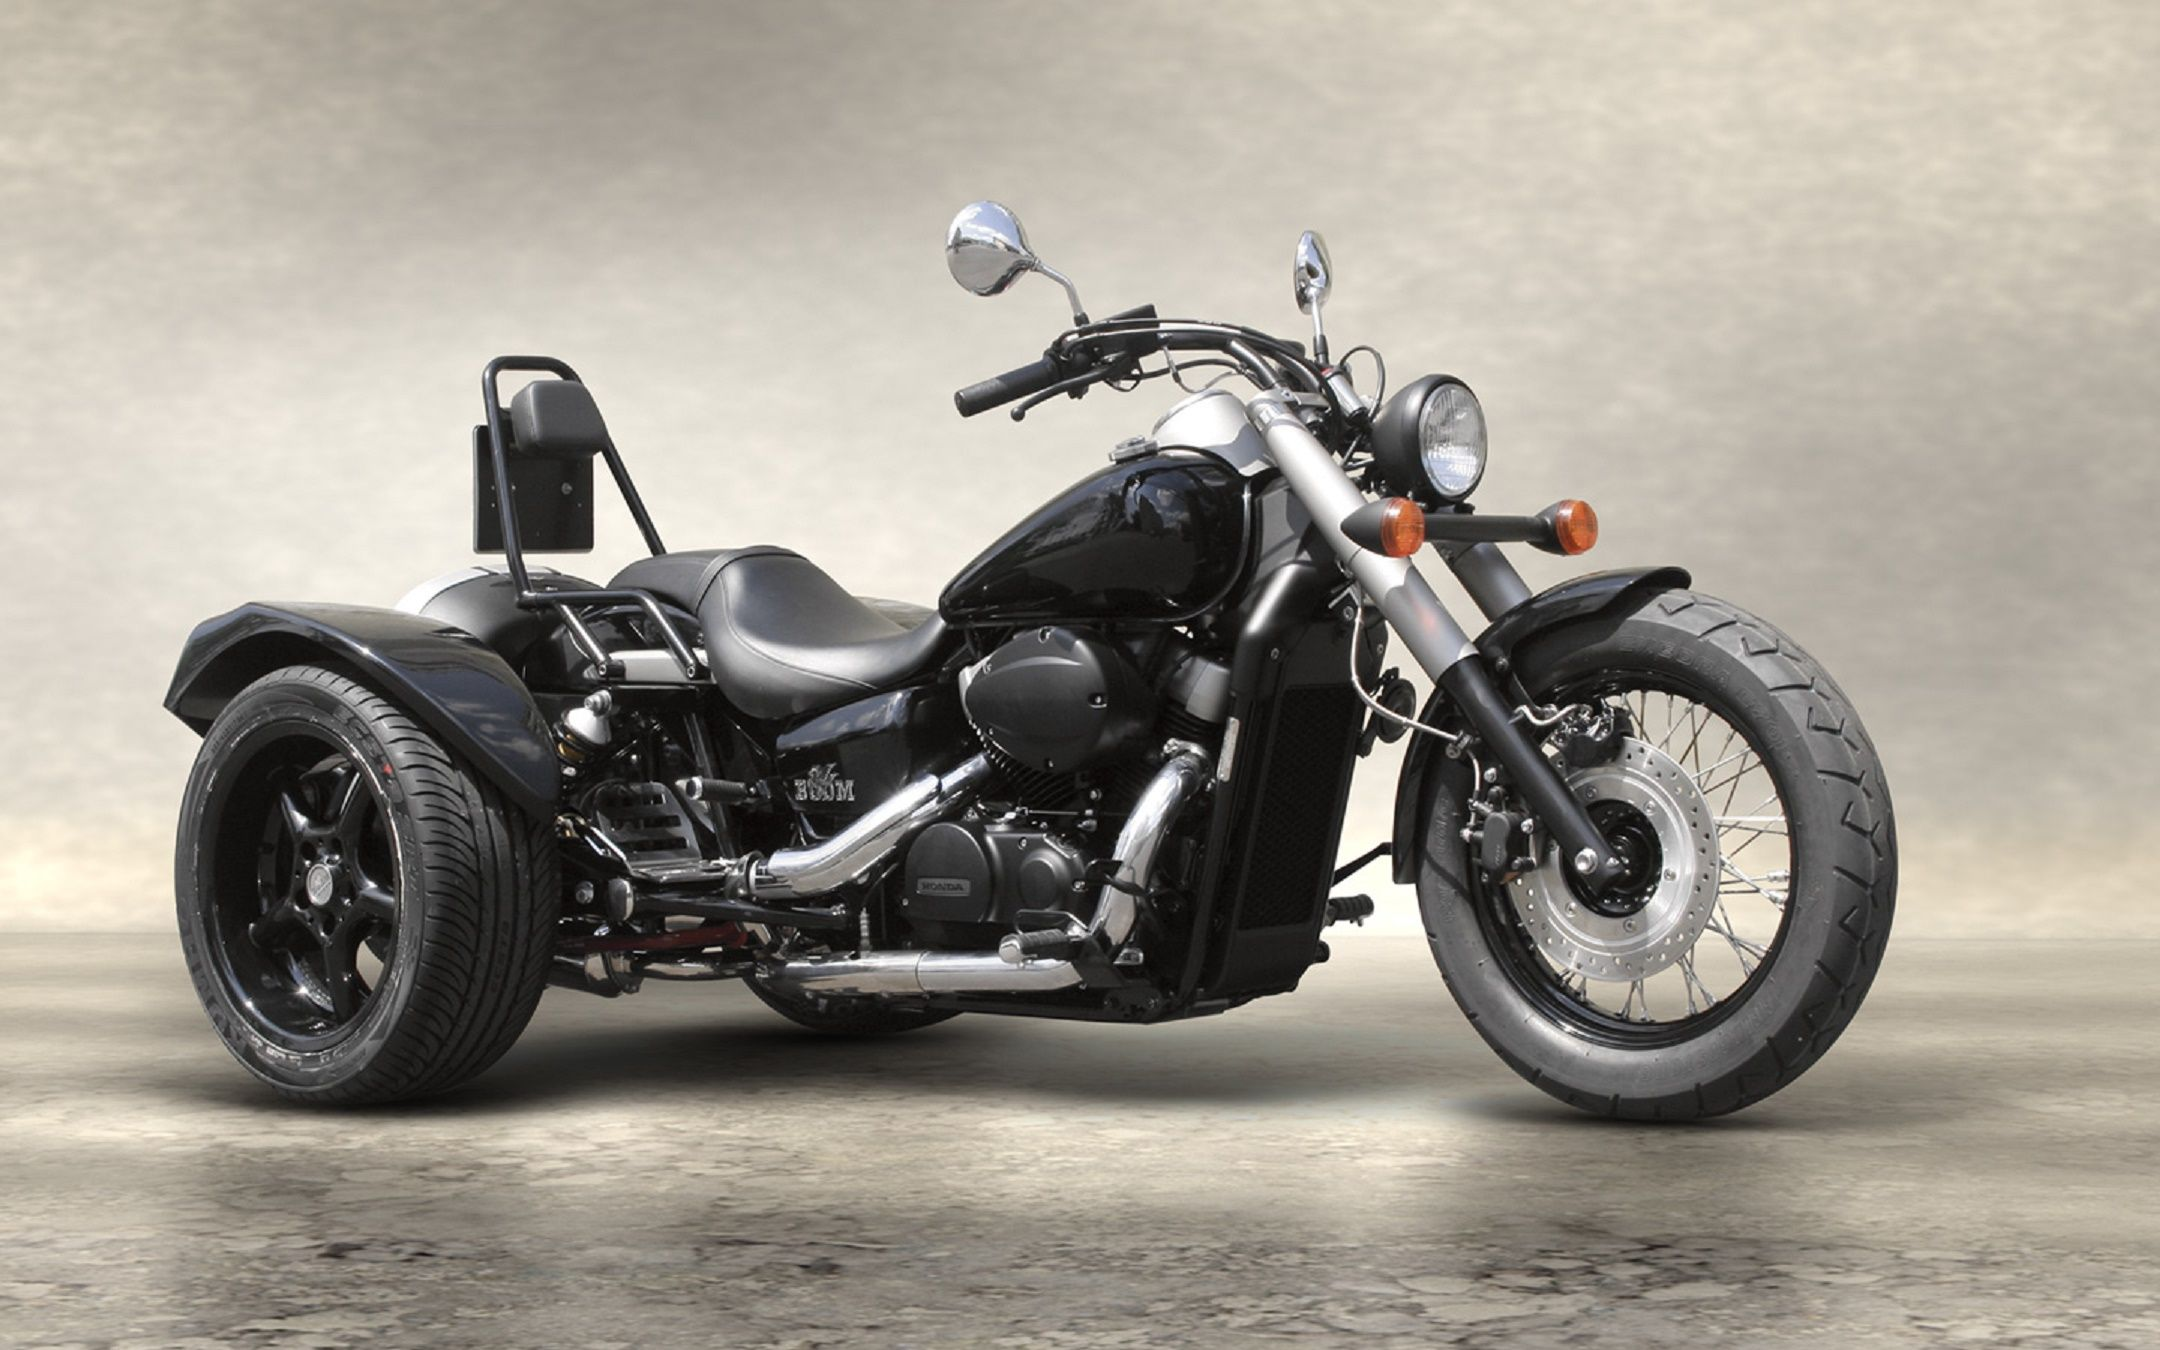 honda shadow vt750 black spirit boom trike http boom. Black Bedroom Furniture Sets. Home Design Ideas